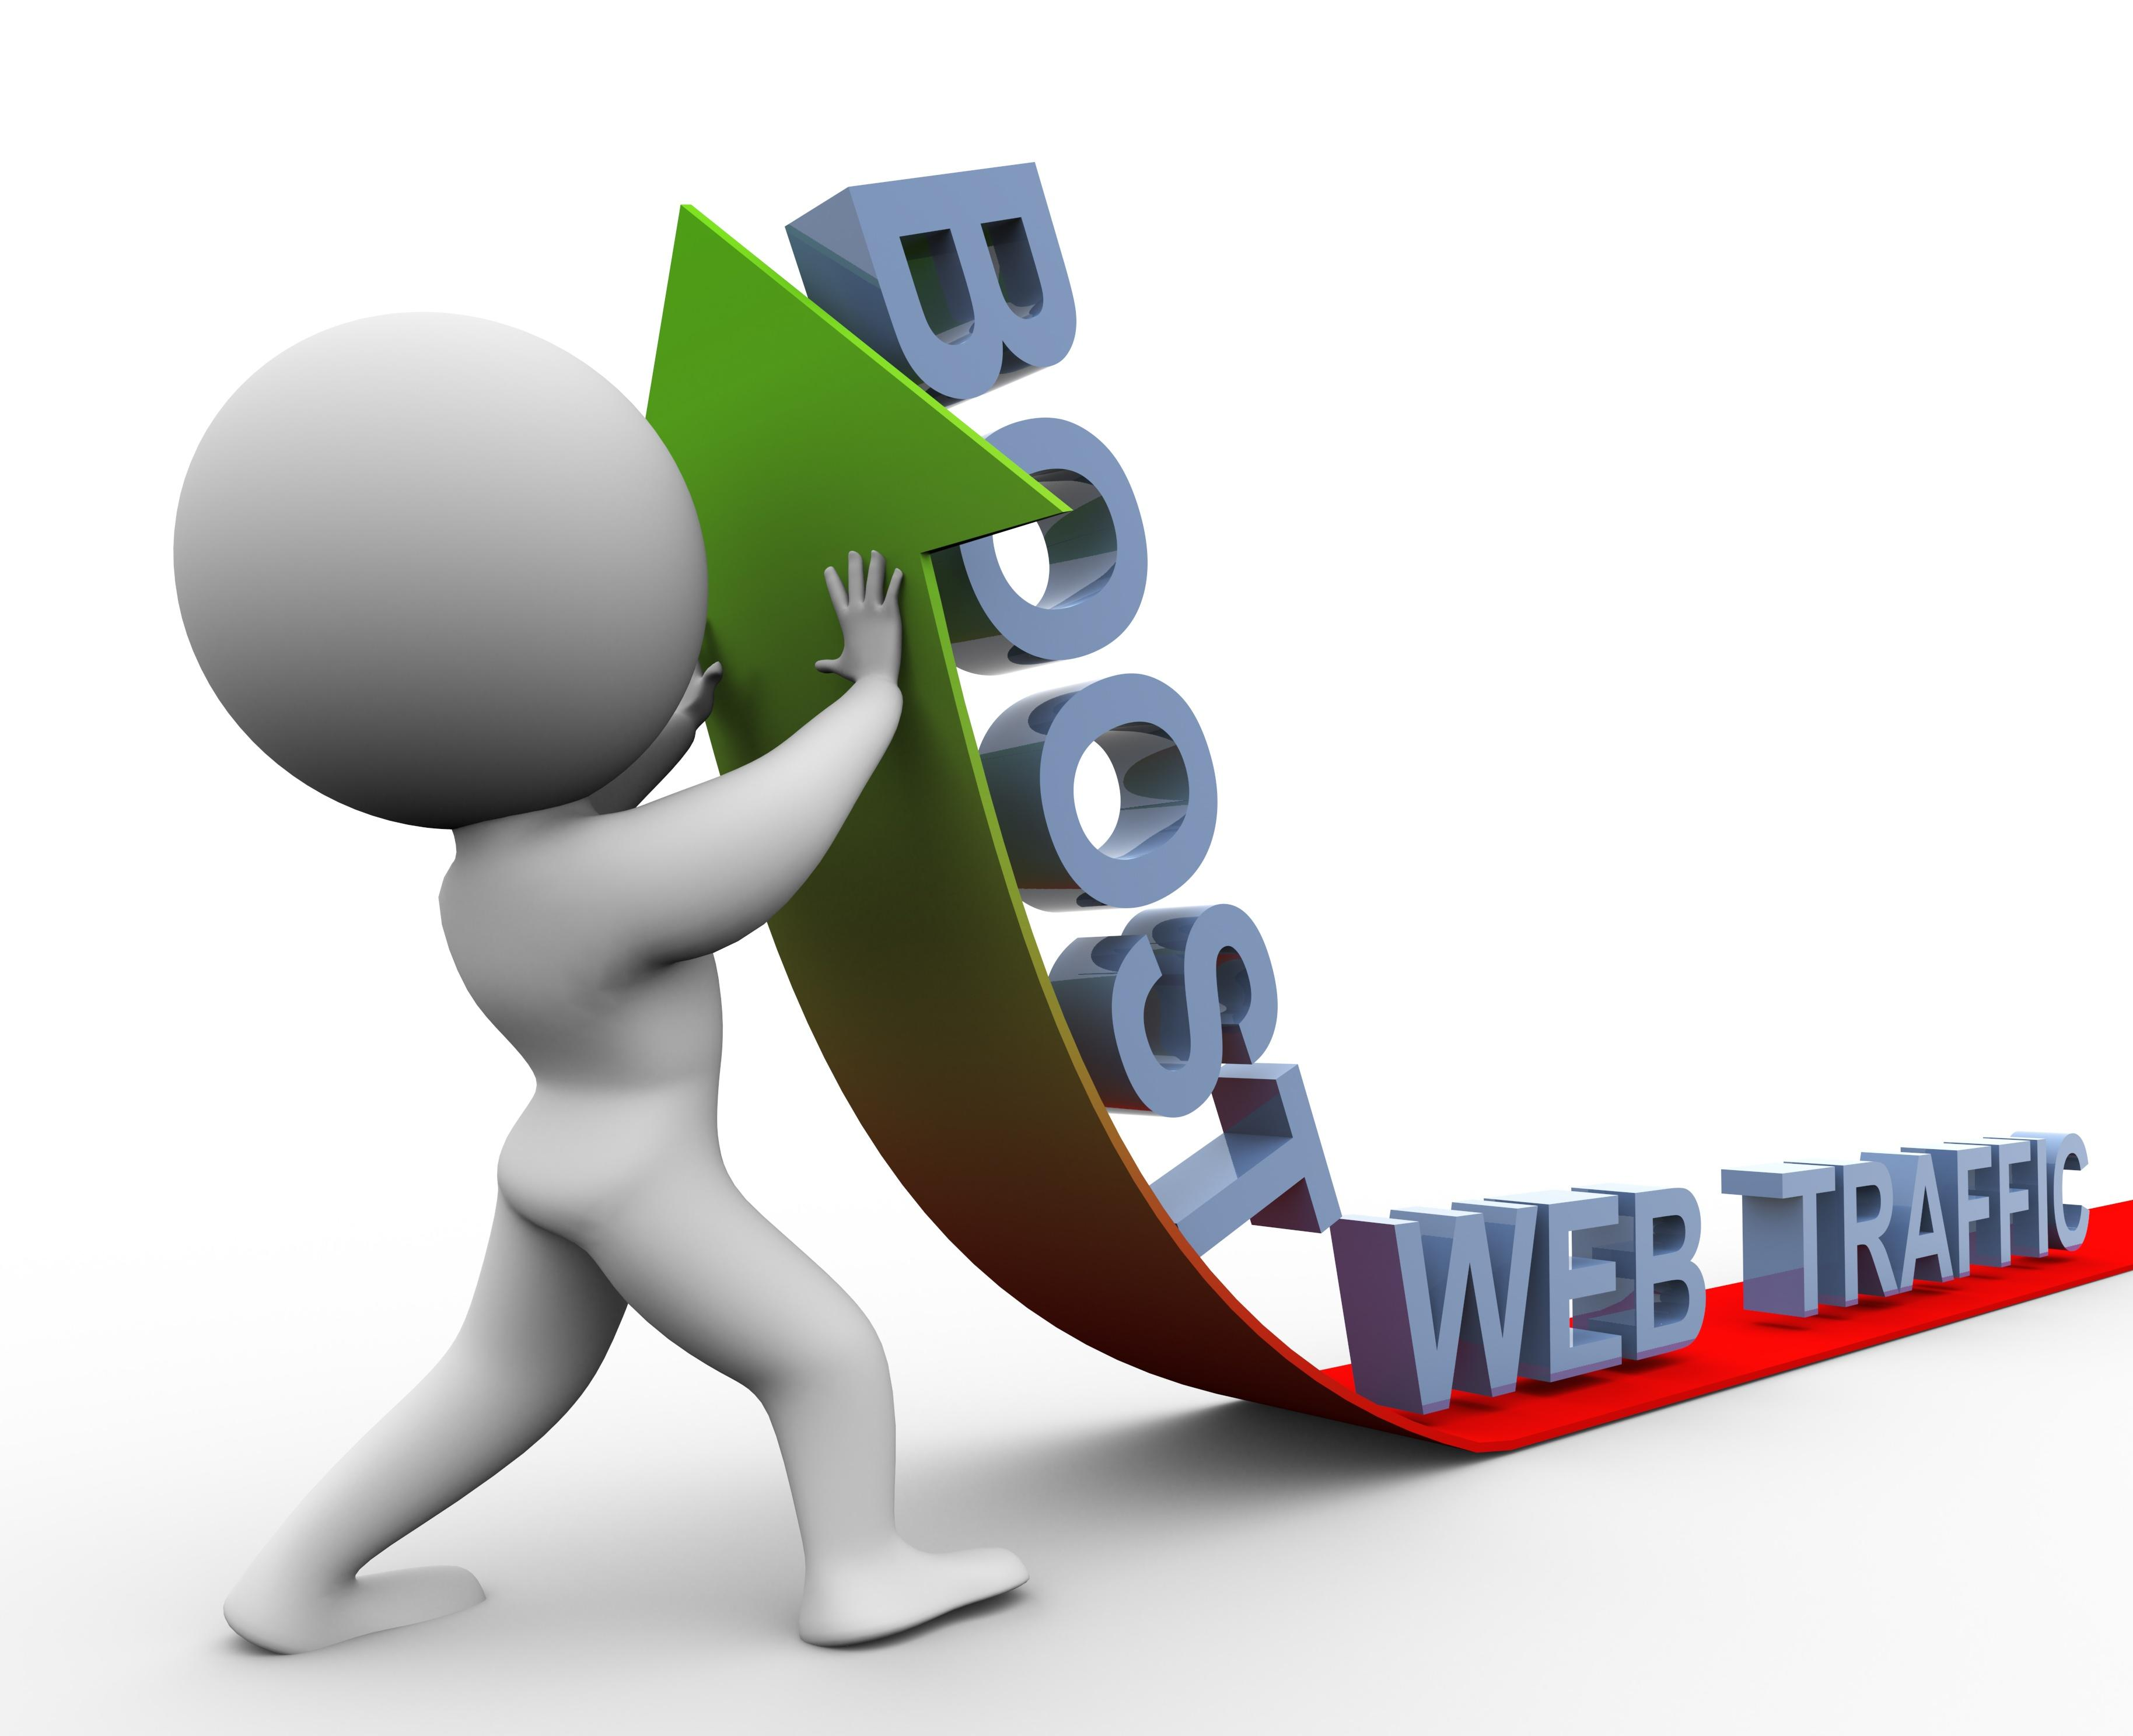 3000 REAL clicks/visitors (mainly from the US) to an URL within 24 hours